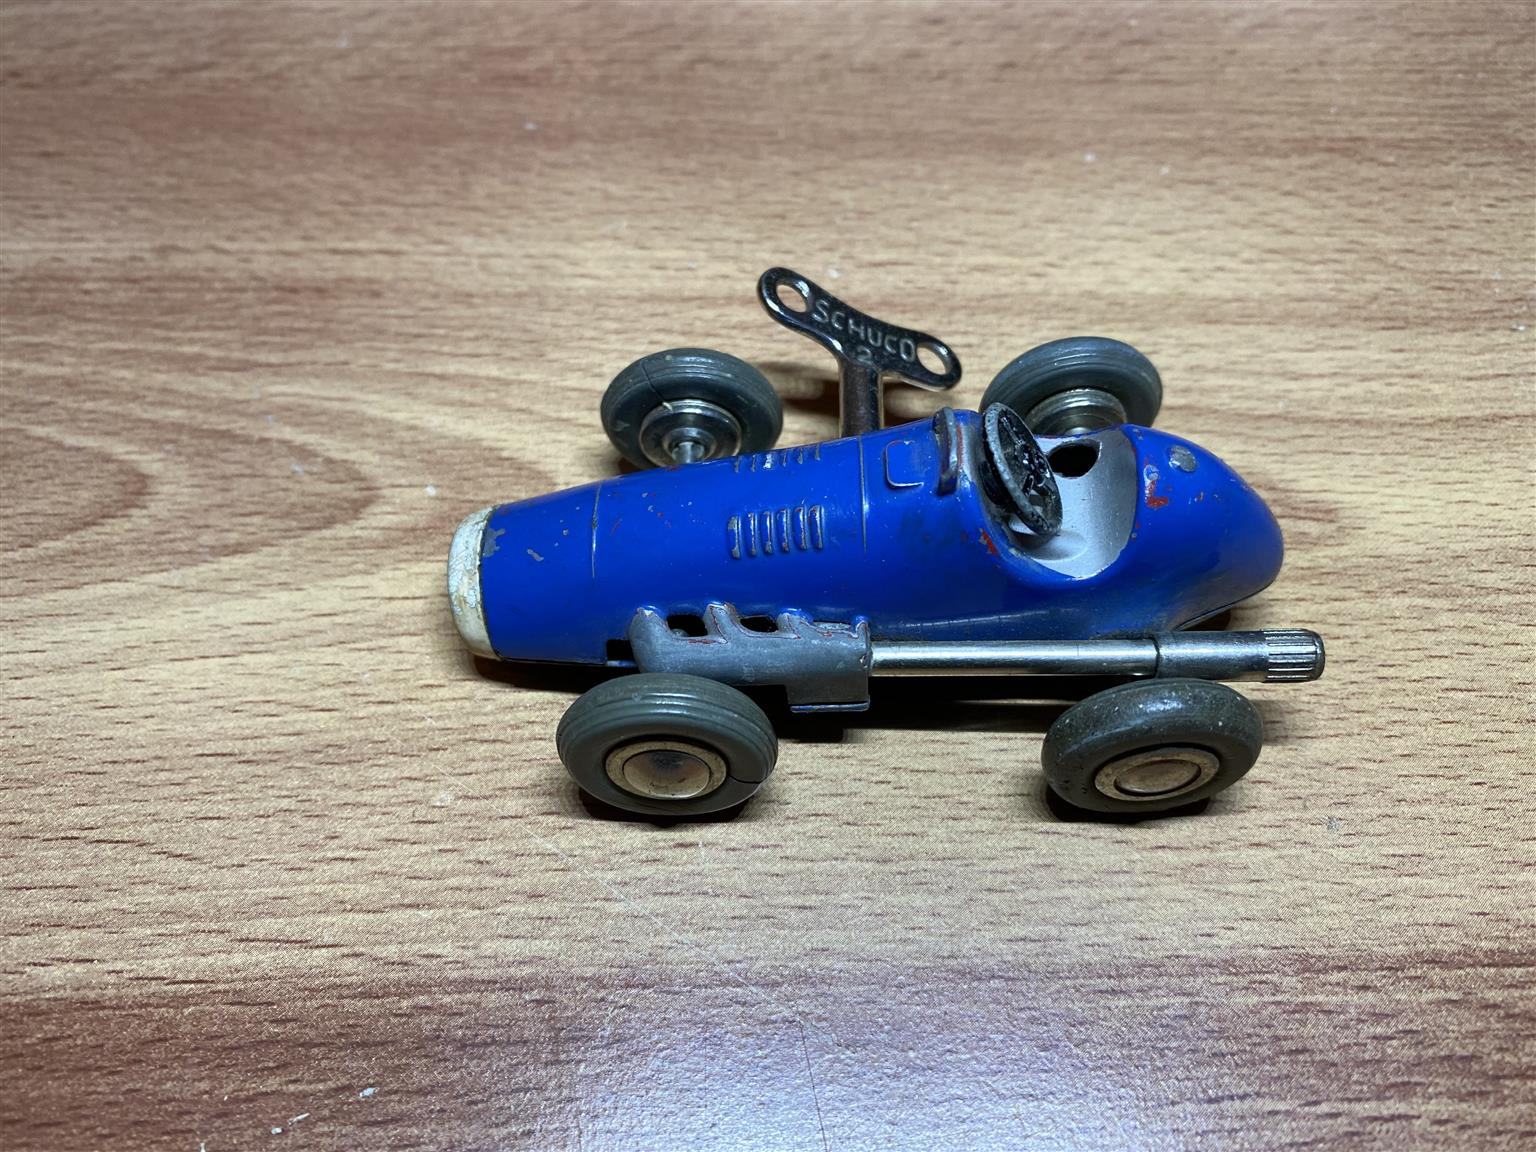 Schuco Micro Racer 1040 with key